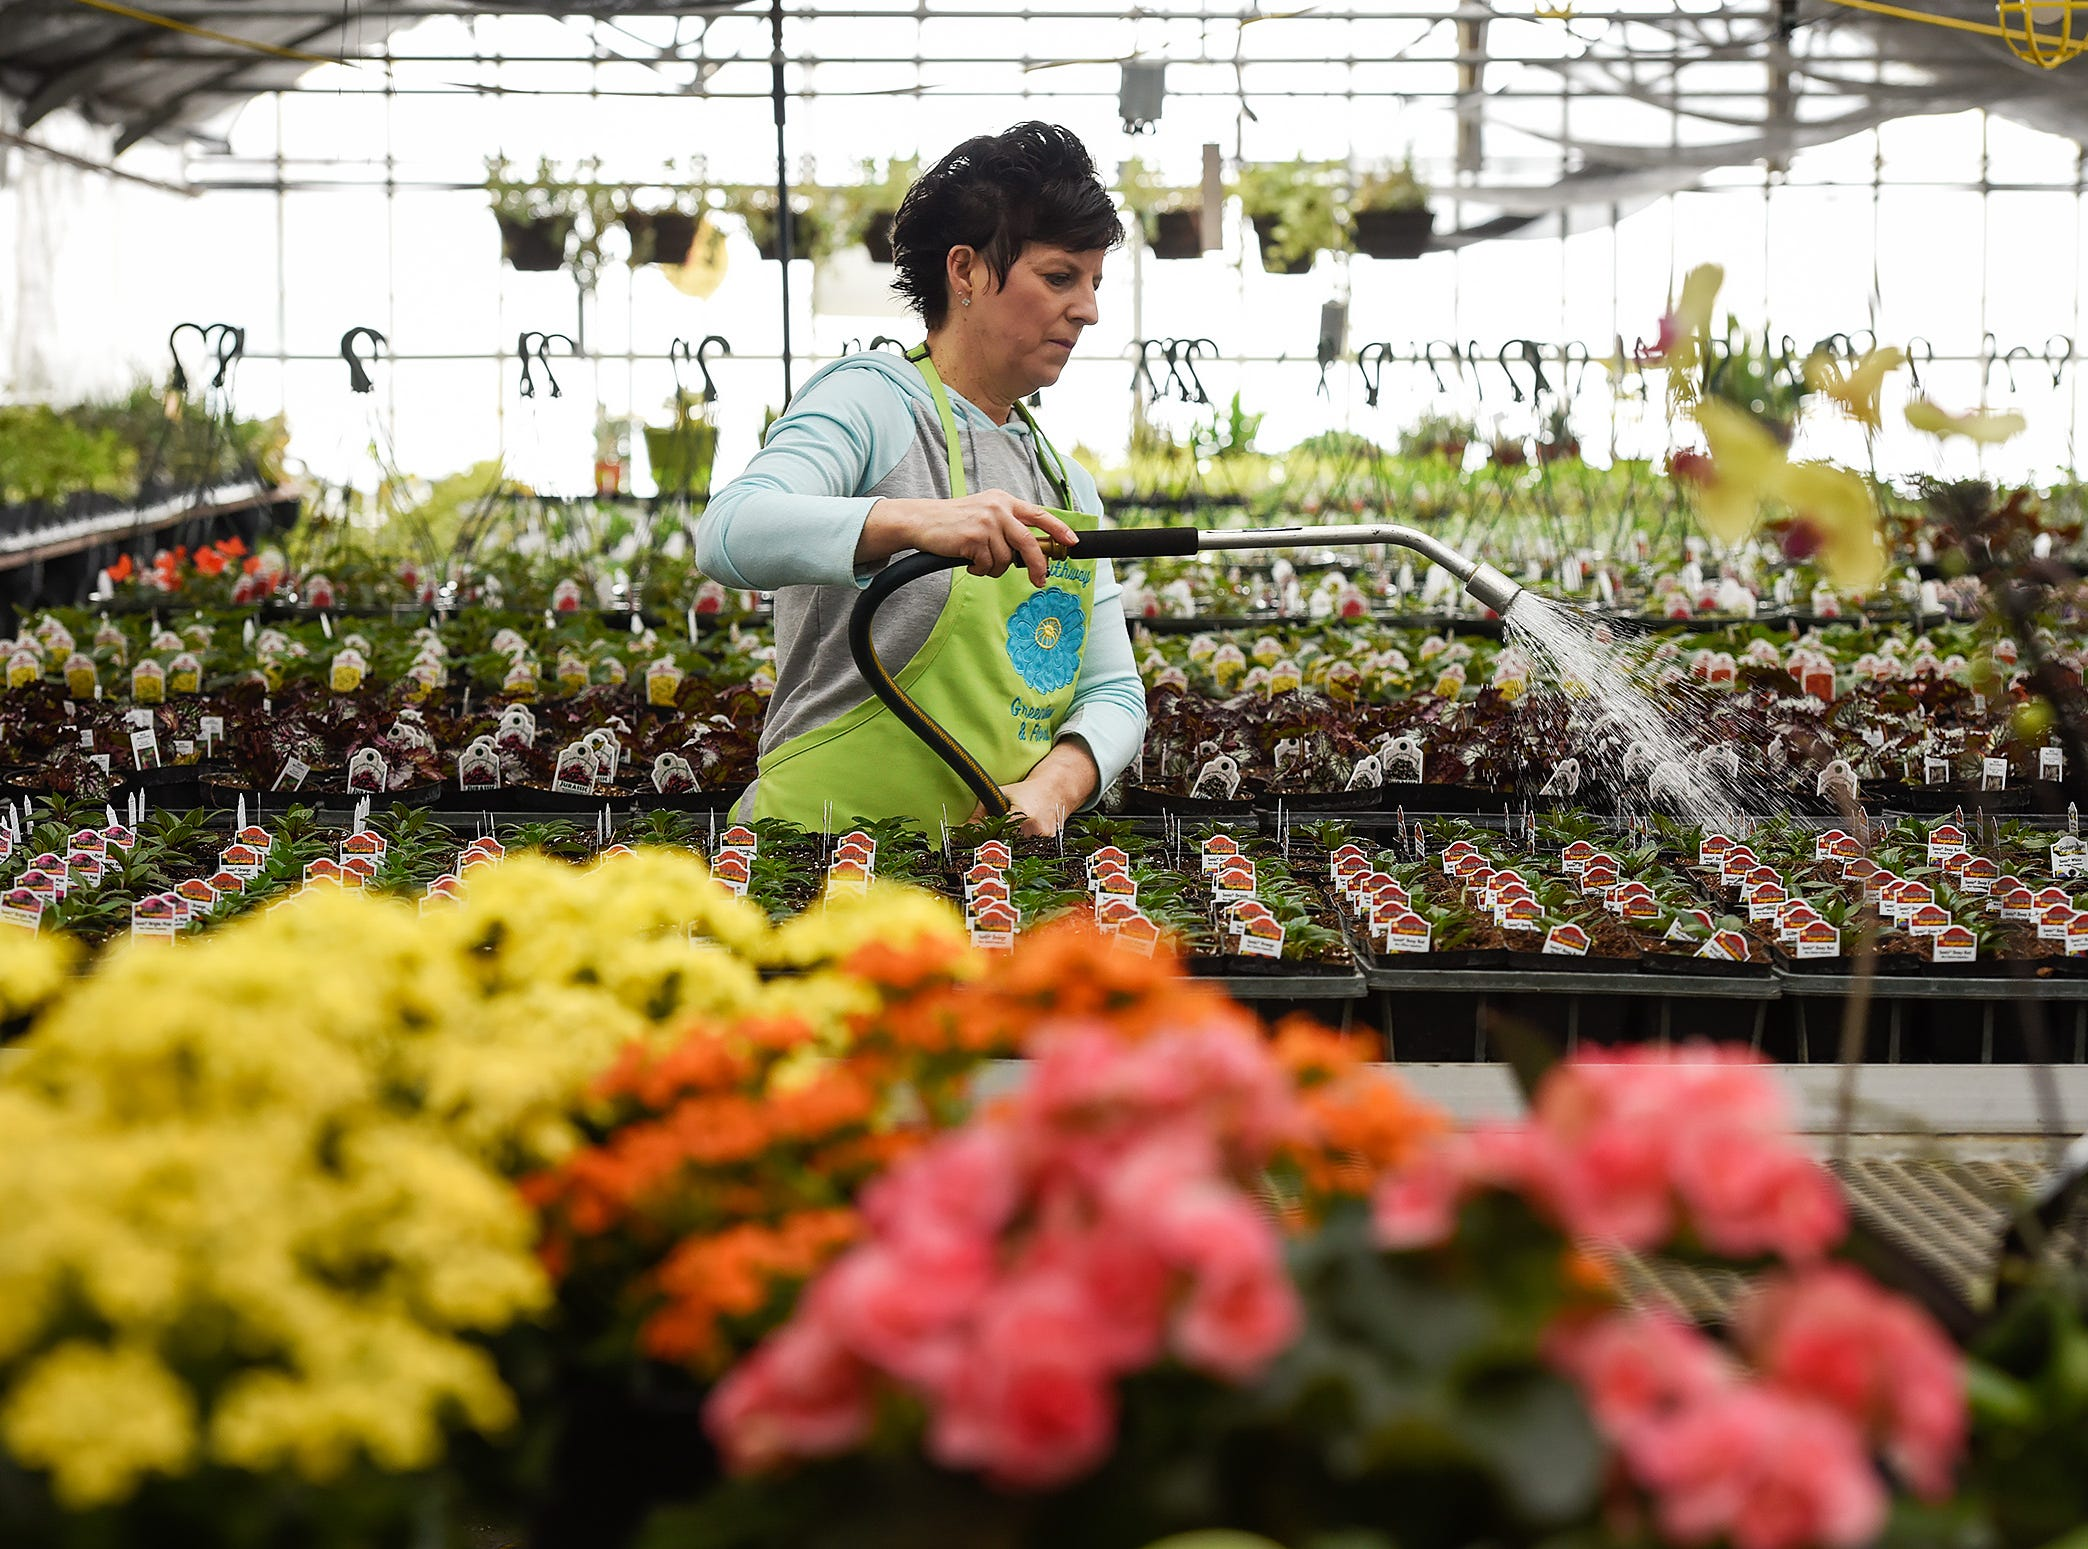 Owner Jackie Notch fertilizes and waters young plants Tuesday, March 6, at Southway Greenhouse & Florist. 